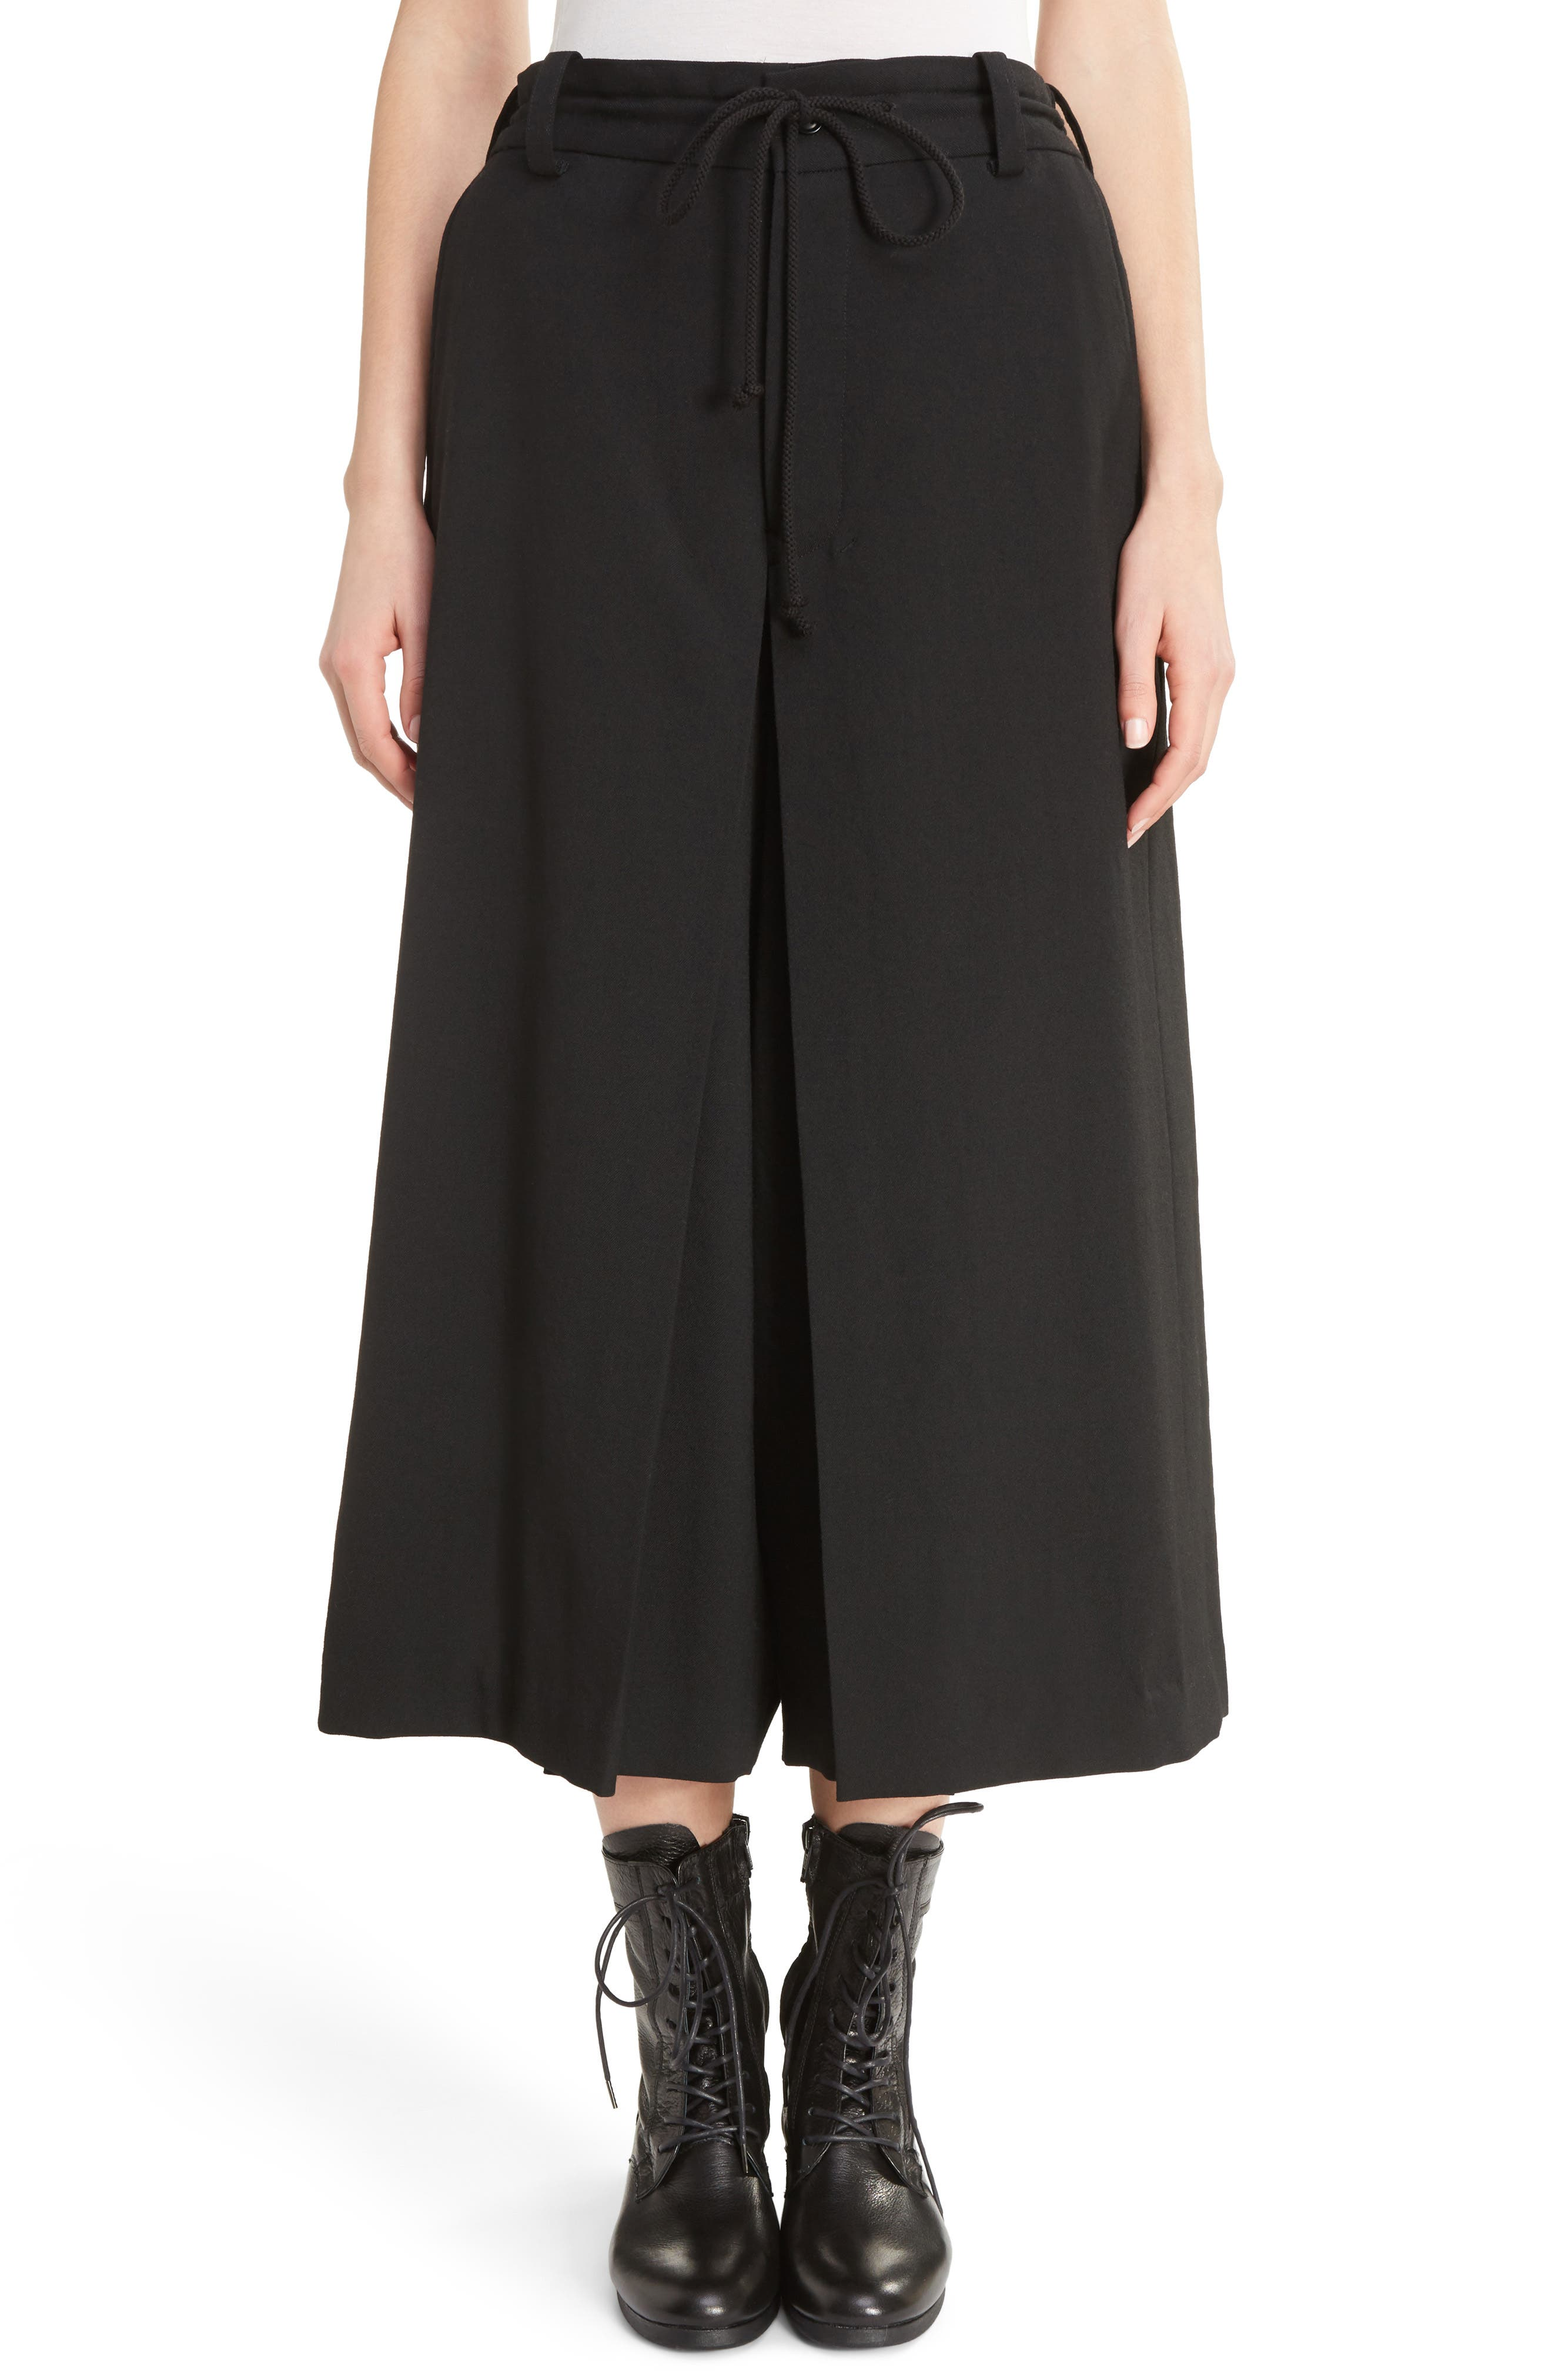 Alternate Image 1 Selected - Y's by Yohji Yamamoto G-Gusset Tuck Front Wide Leg Pants